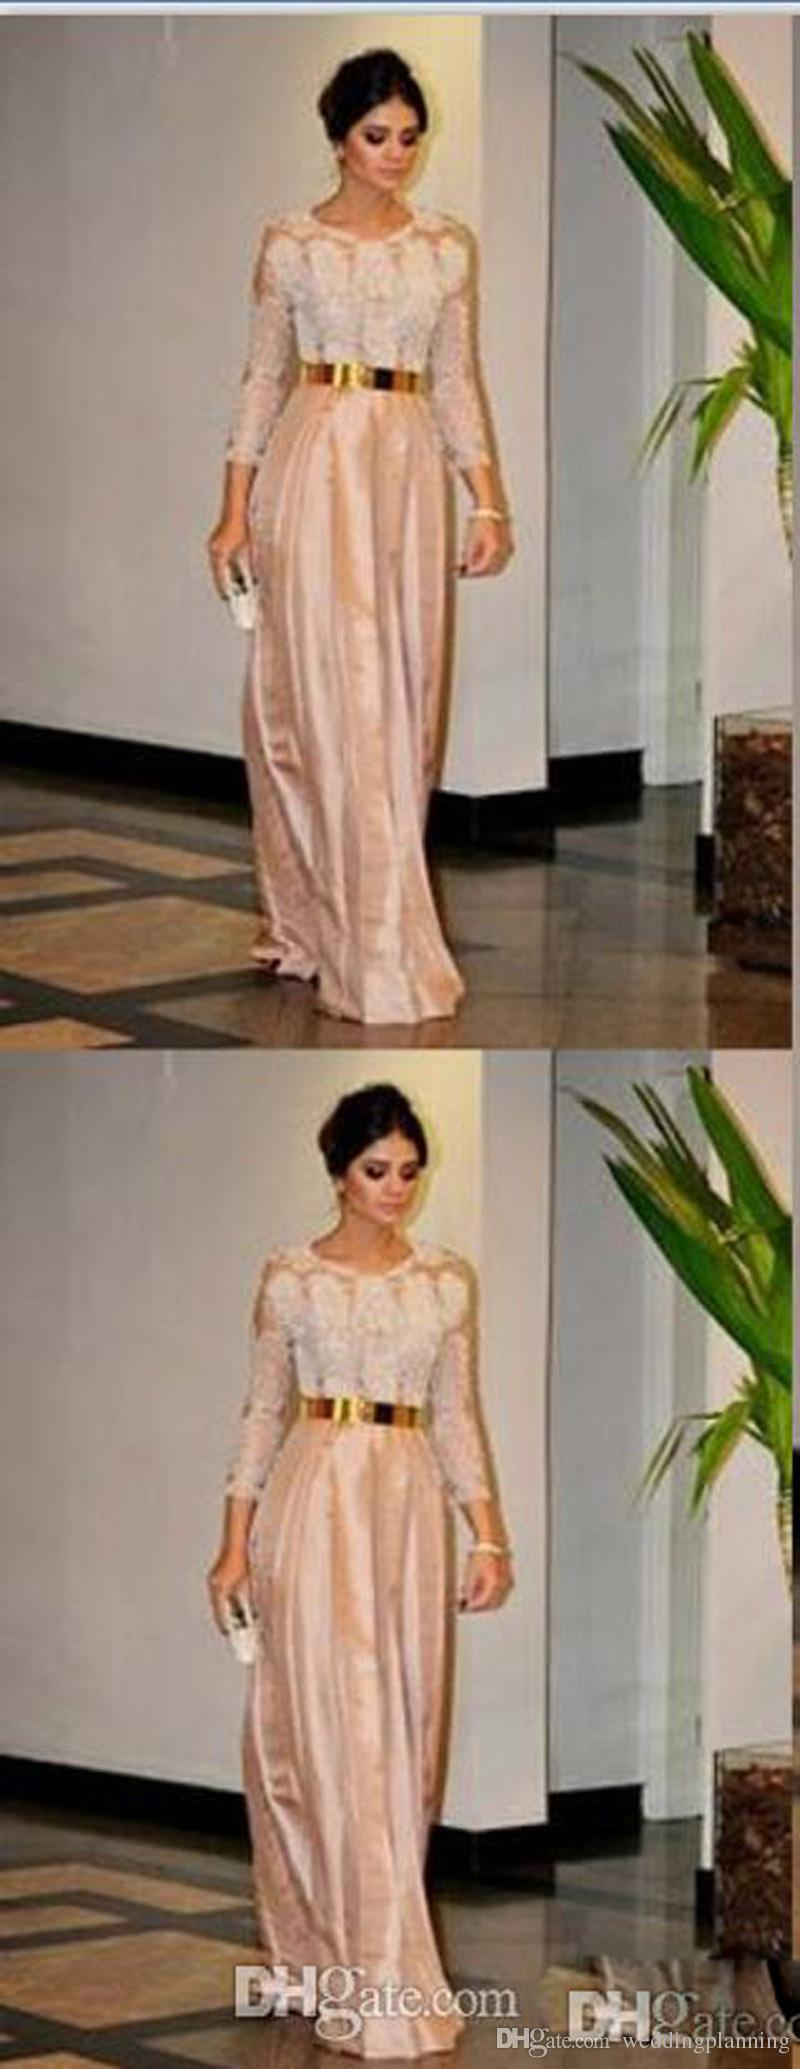 2017 Mother Of The Bride Groom Dress Gold Belt Lace Beads Long Sleeve Dinner Prom Dress Cheap Back Zipper Taffeta Party Evening Gowns